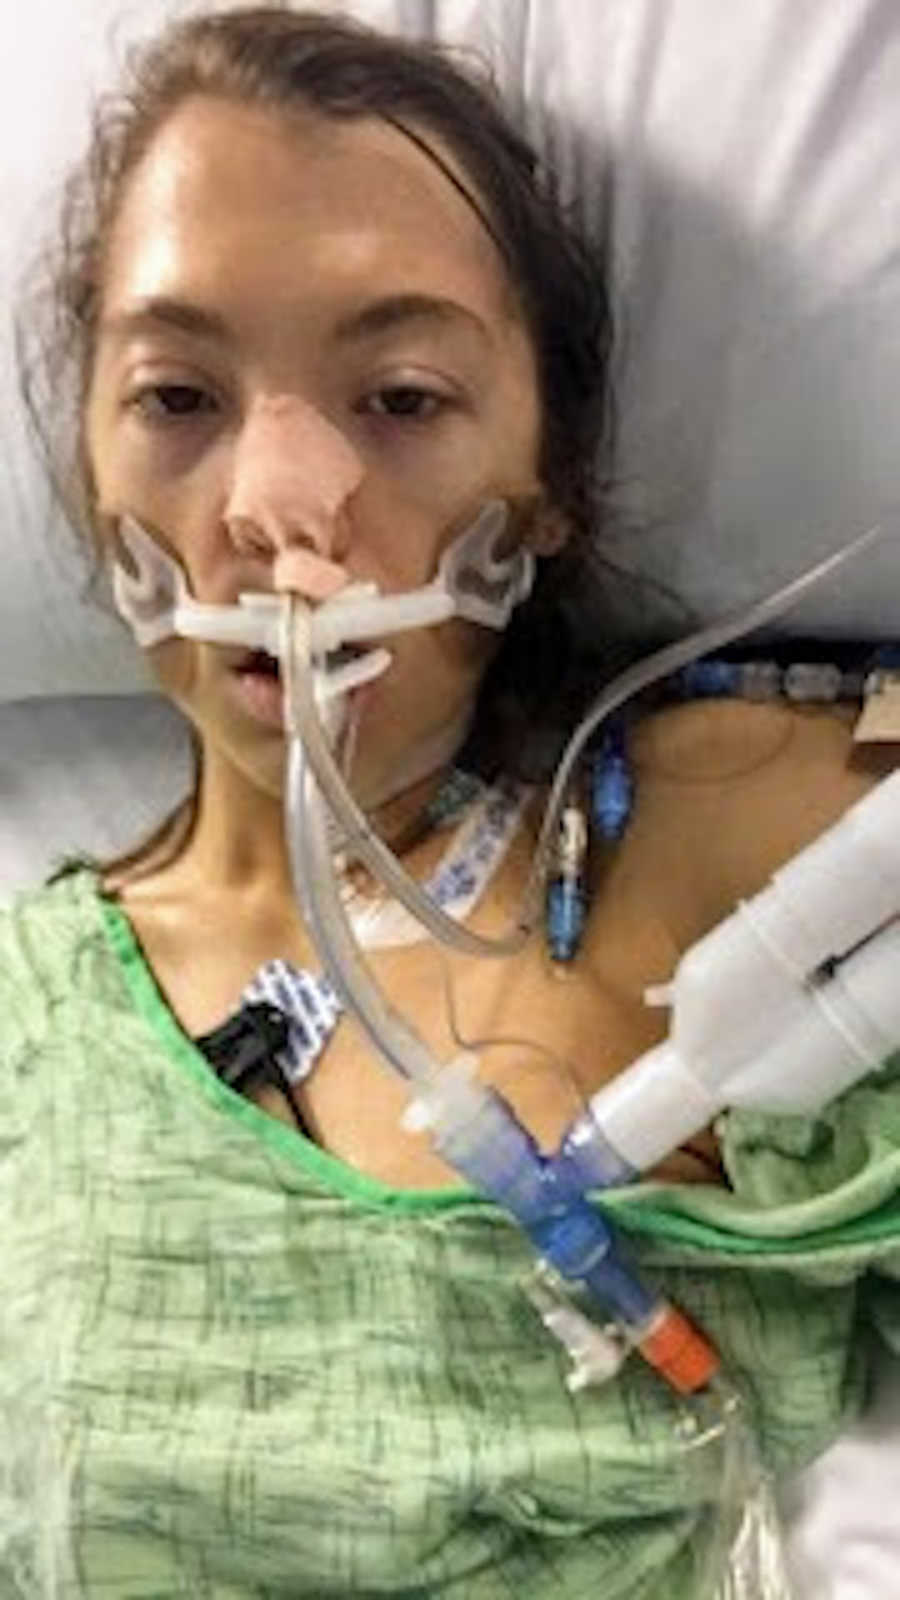 Woman on ventilator taking selfie after lung surgery